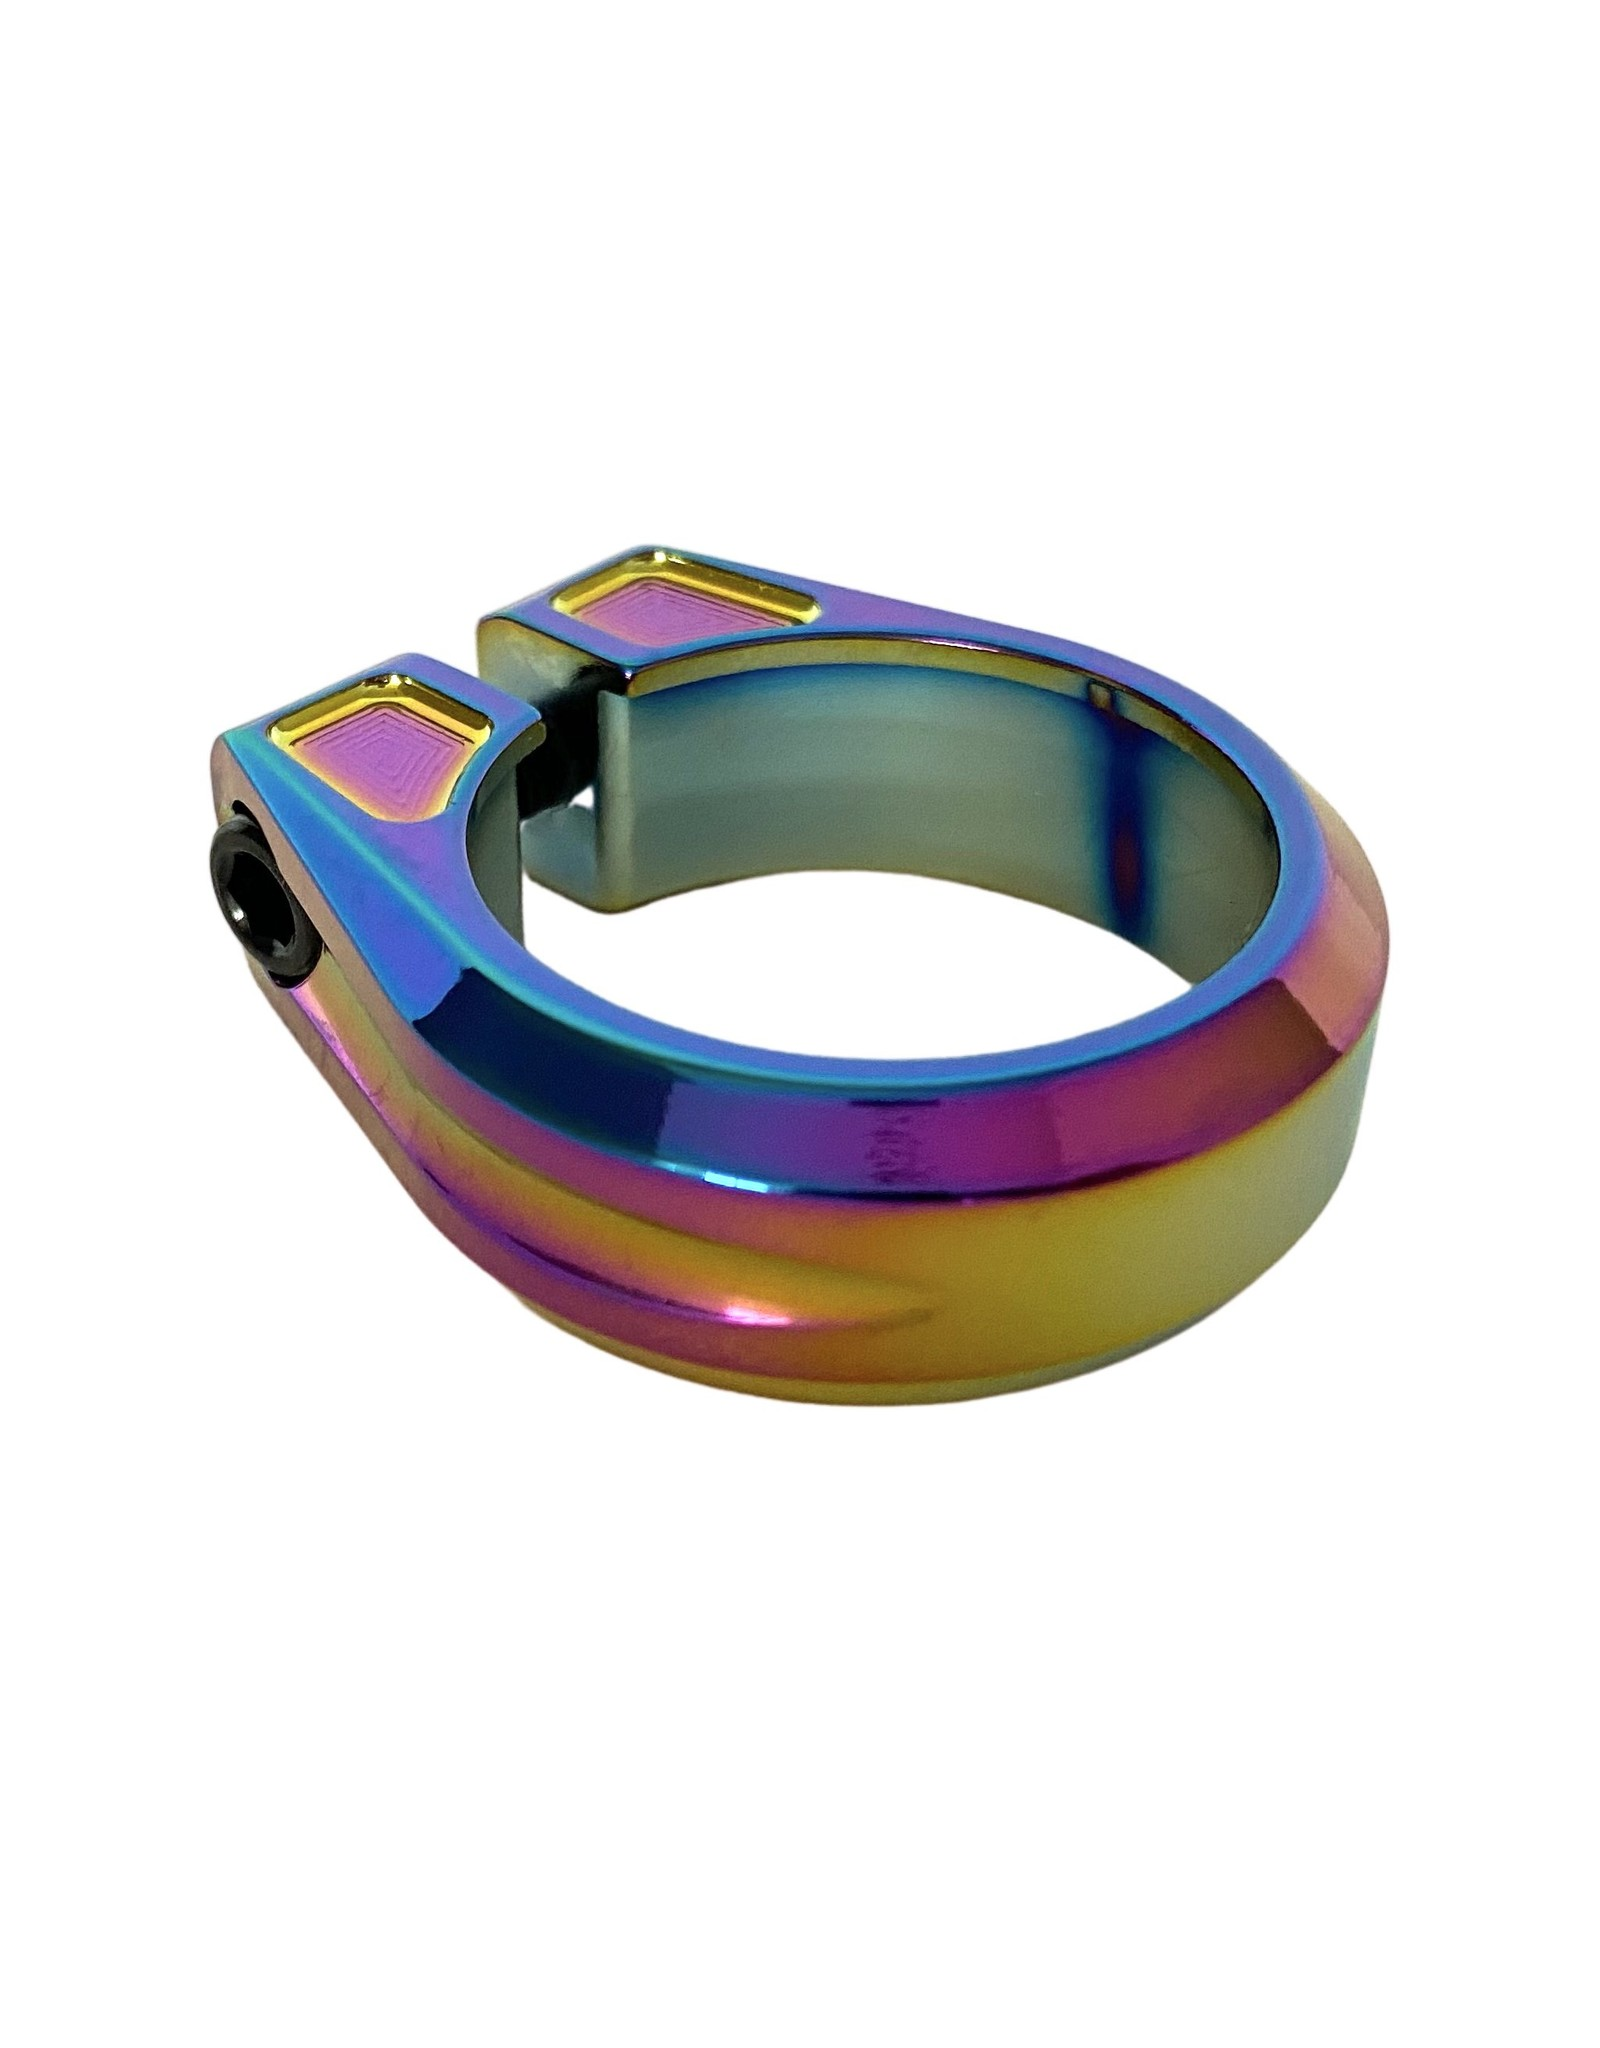 Canfield Bikes Canfield Limited Edition Oil Slick Seatpost Clamp Load image into Gallery viewer, Canfield Limited Edition Oil Slick Seatpost Clamp Load image into Gallery viewer, Canfield Limited Edition Oil Slick Seatpost Clamp Canfield